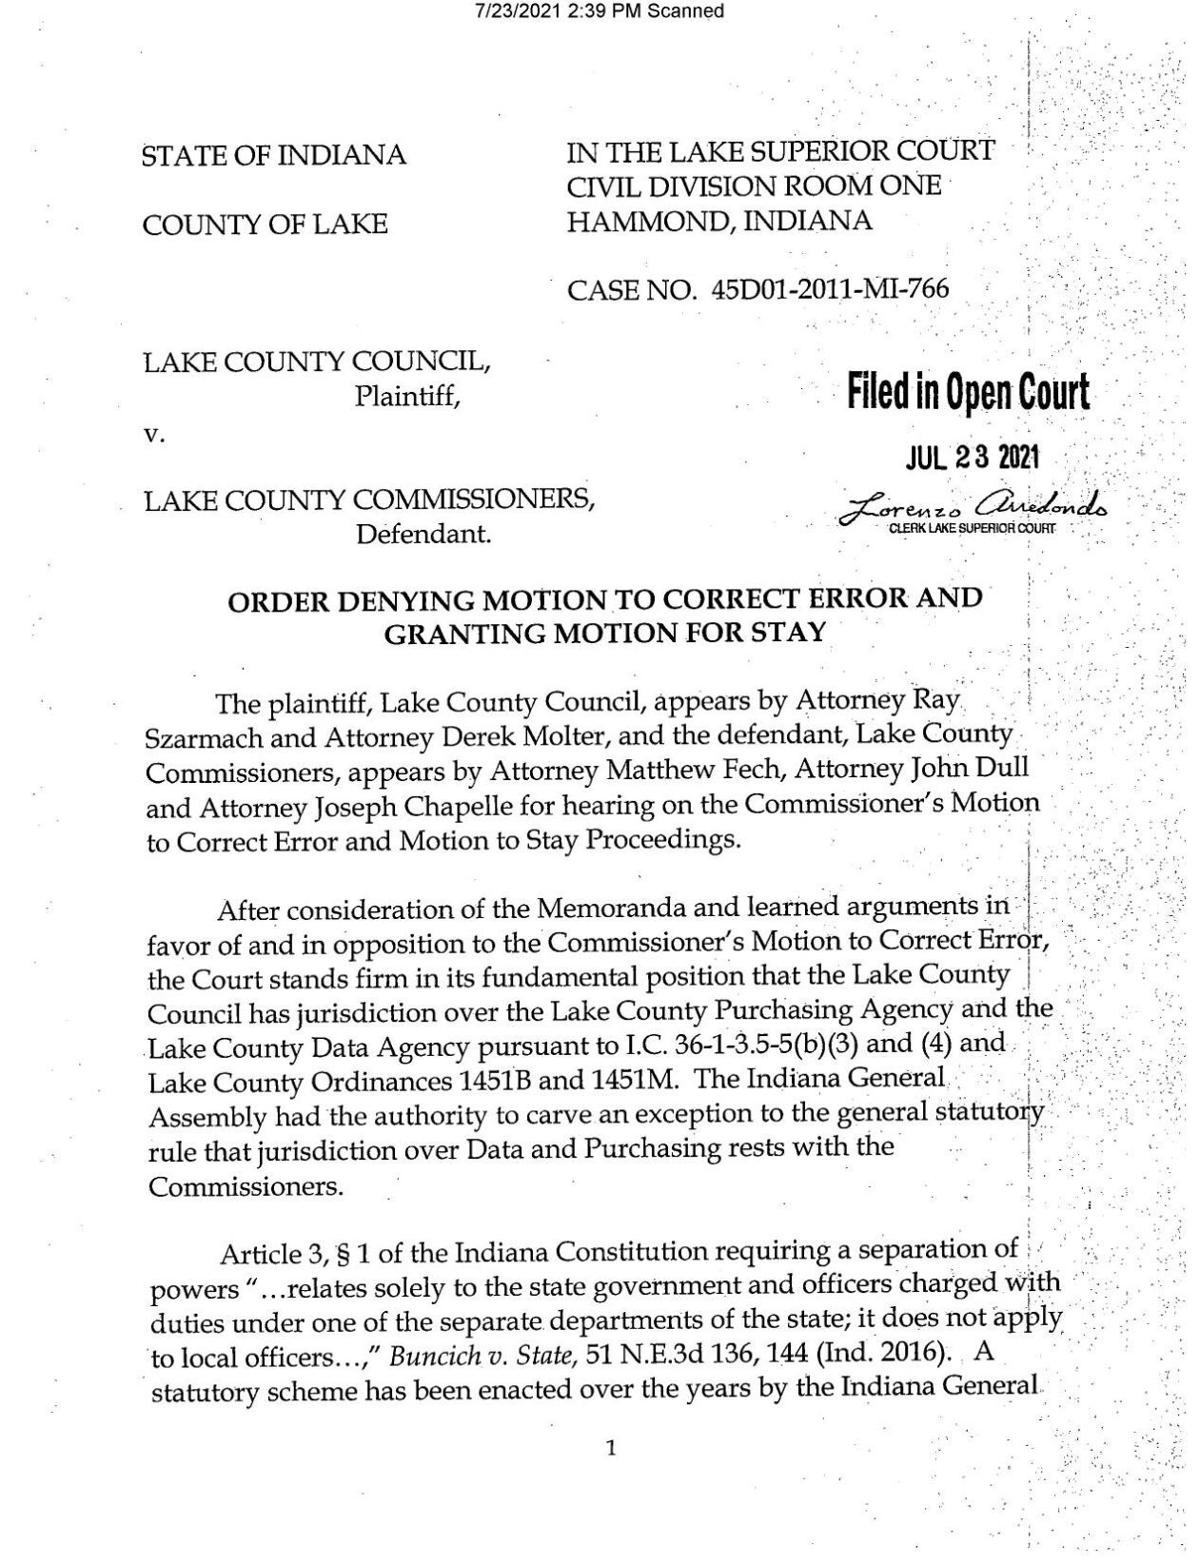 Stay order in Lake County Council v. Lake County Commissioners